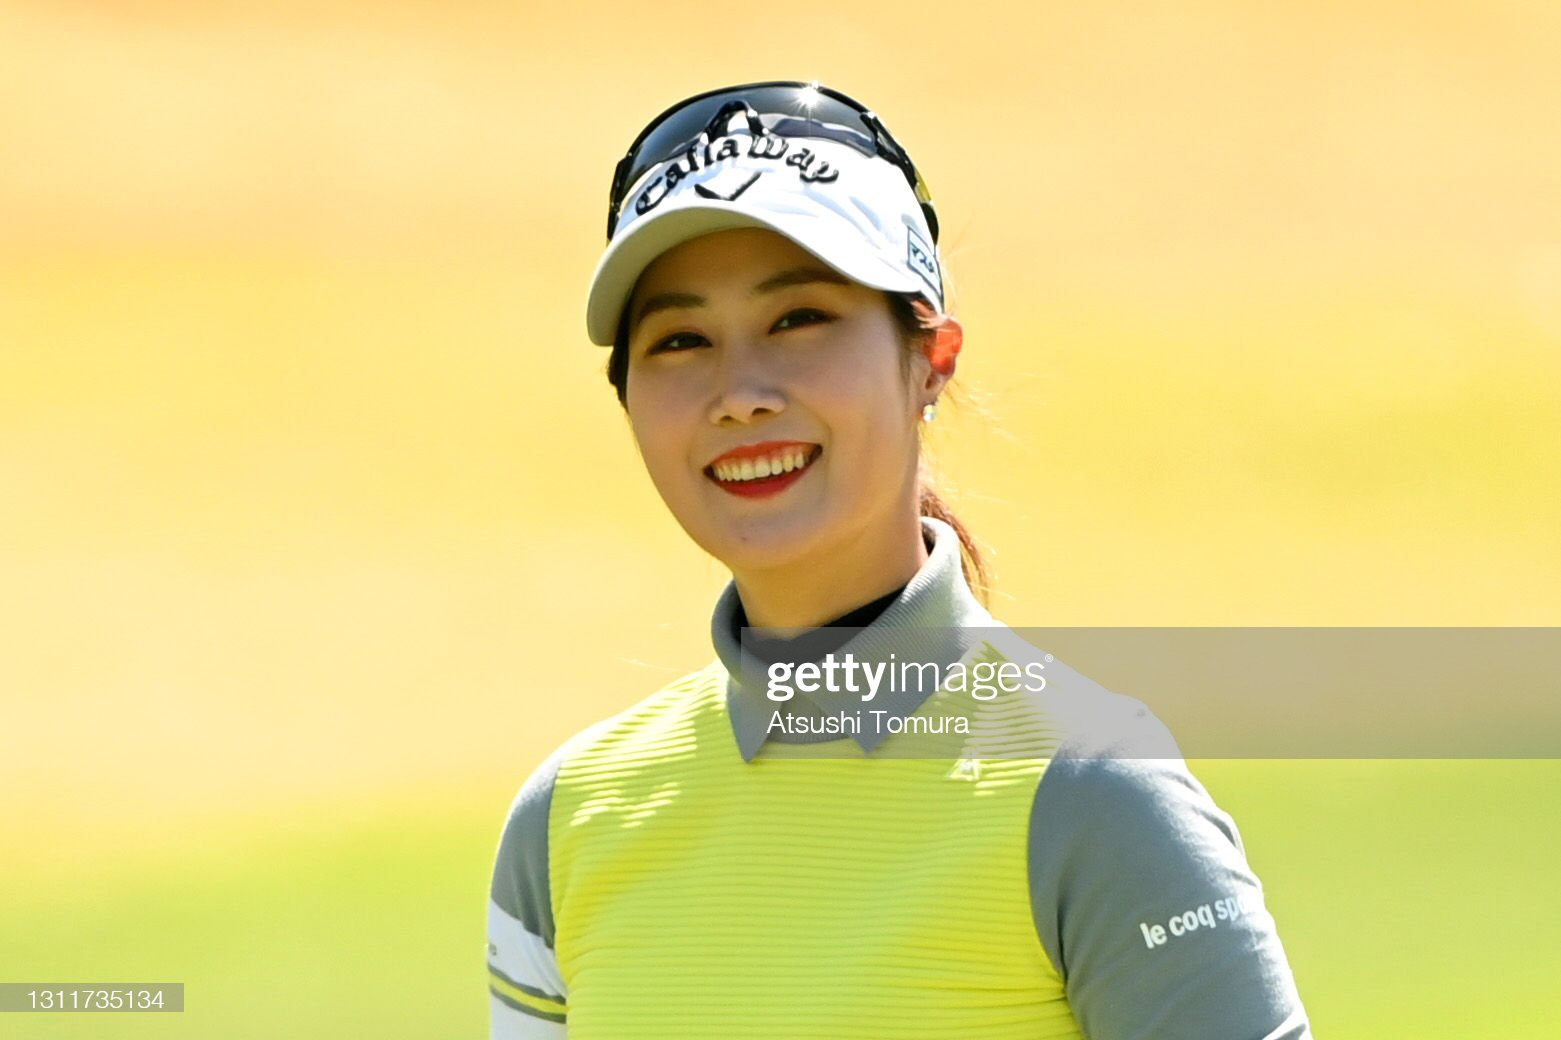 https://media.gettyimages.com/photos/haneul-kim-of-south-korea-smiles-on-the-14th-hole-during-the-second-picture-id1311735134?s=2048x2048